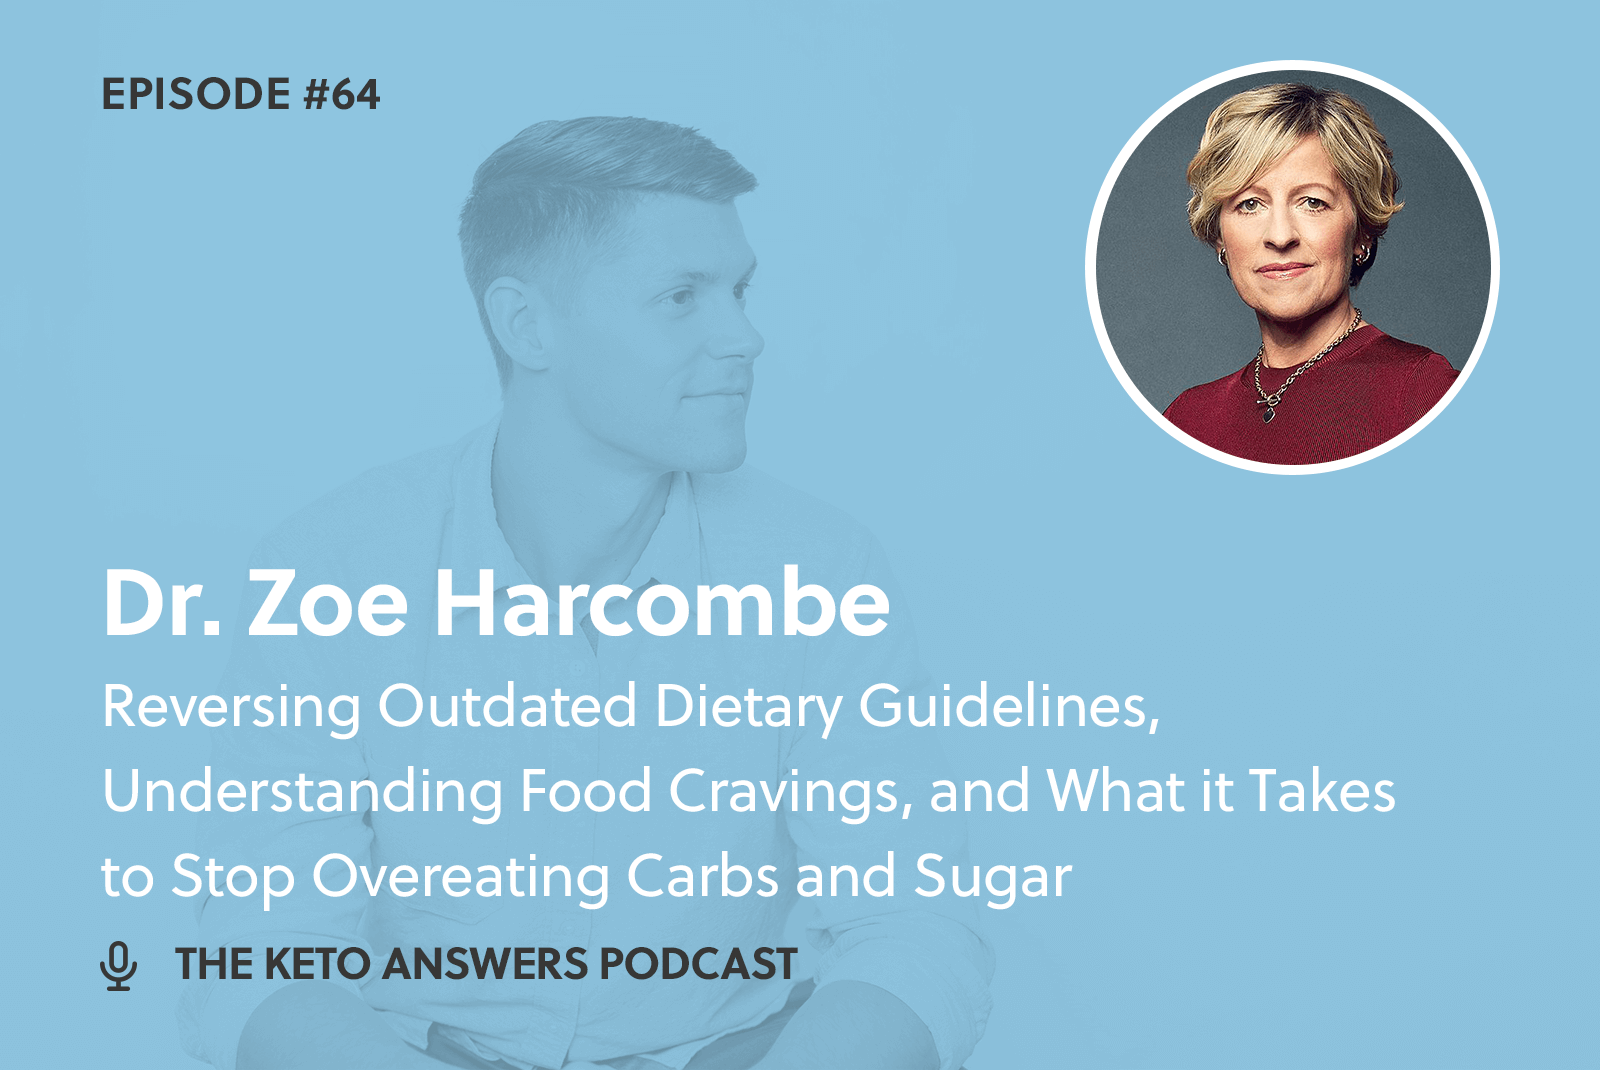 064: Dr. Zoe Harcombe – Reversing Outdated Dietary Guidelines, Understanding Food Cravings, and What it Takes to Stop Overeating Carbs and Sugar